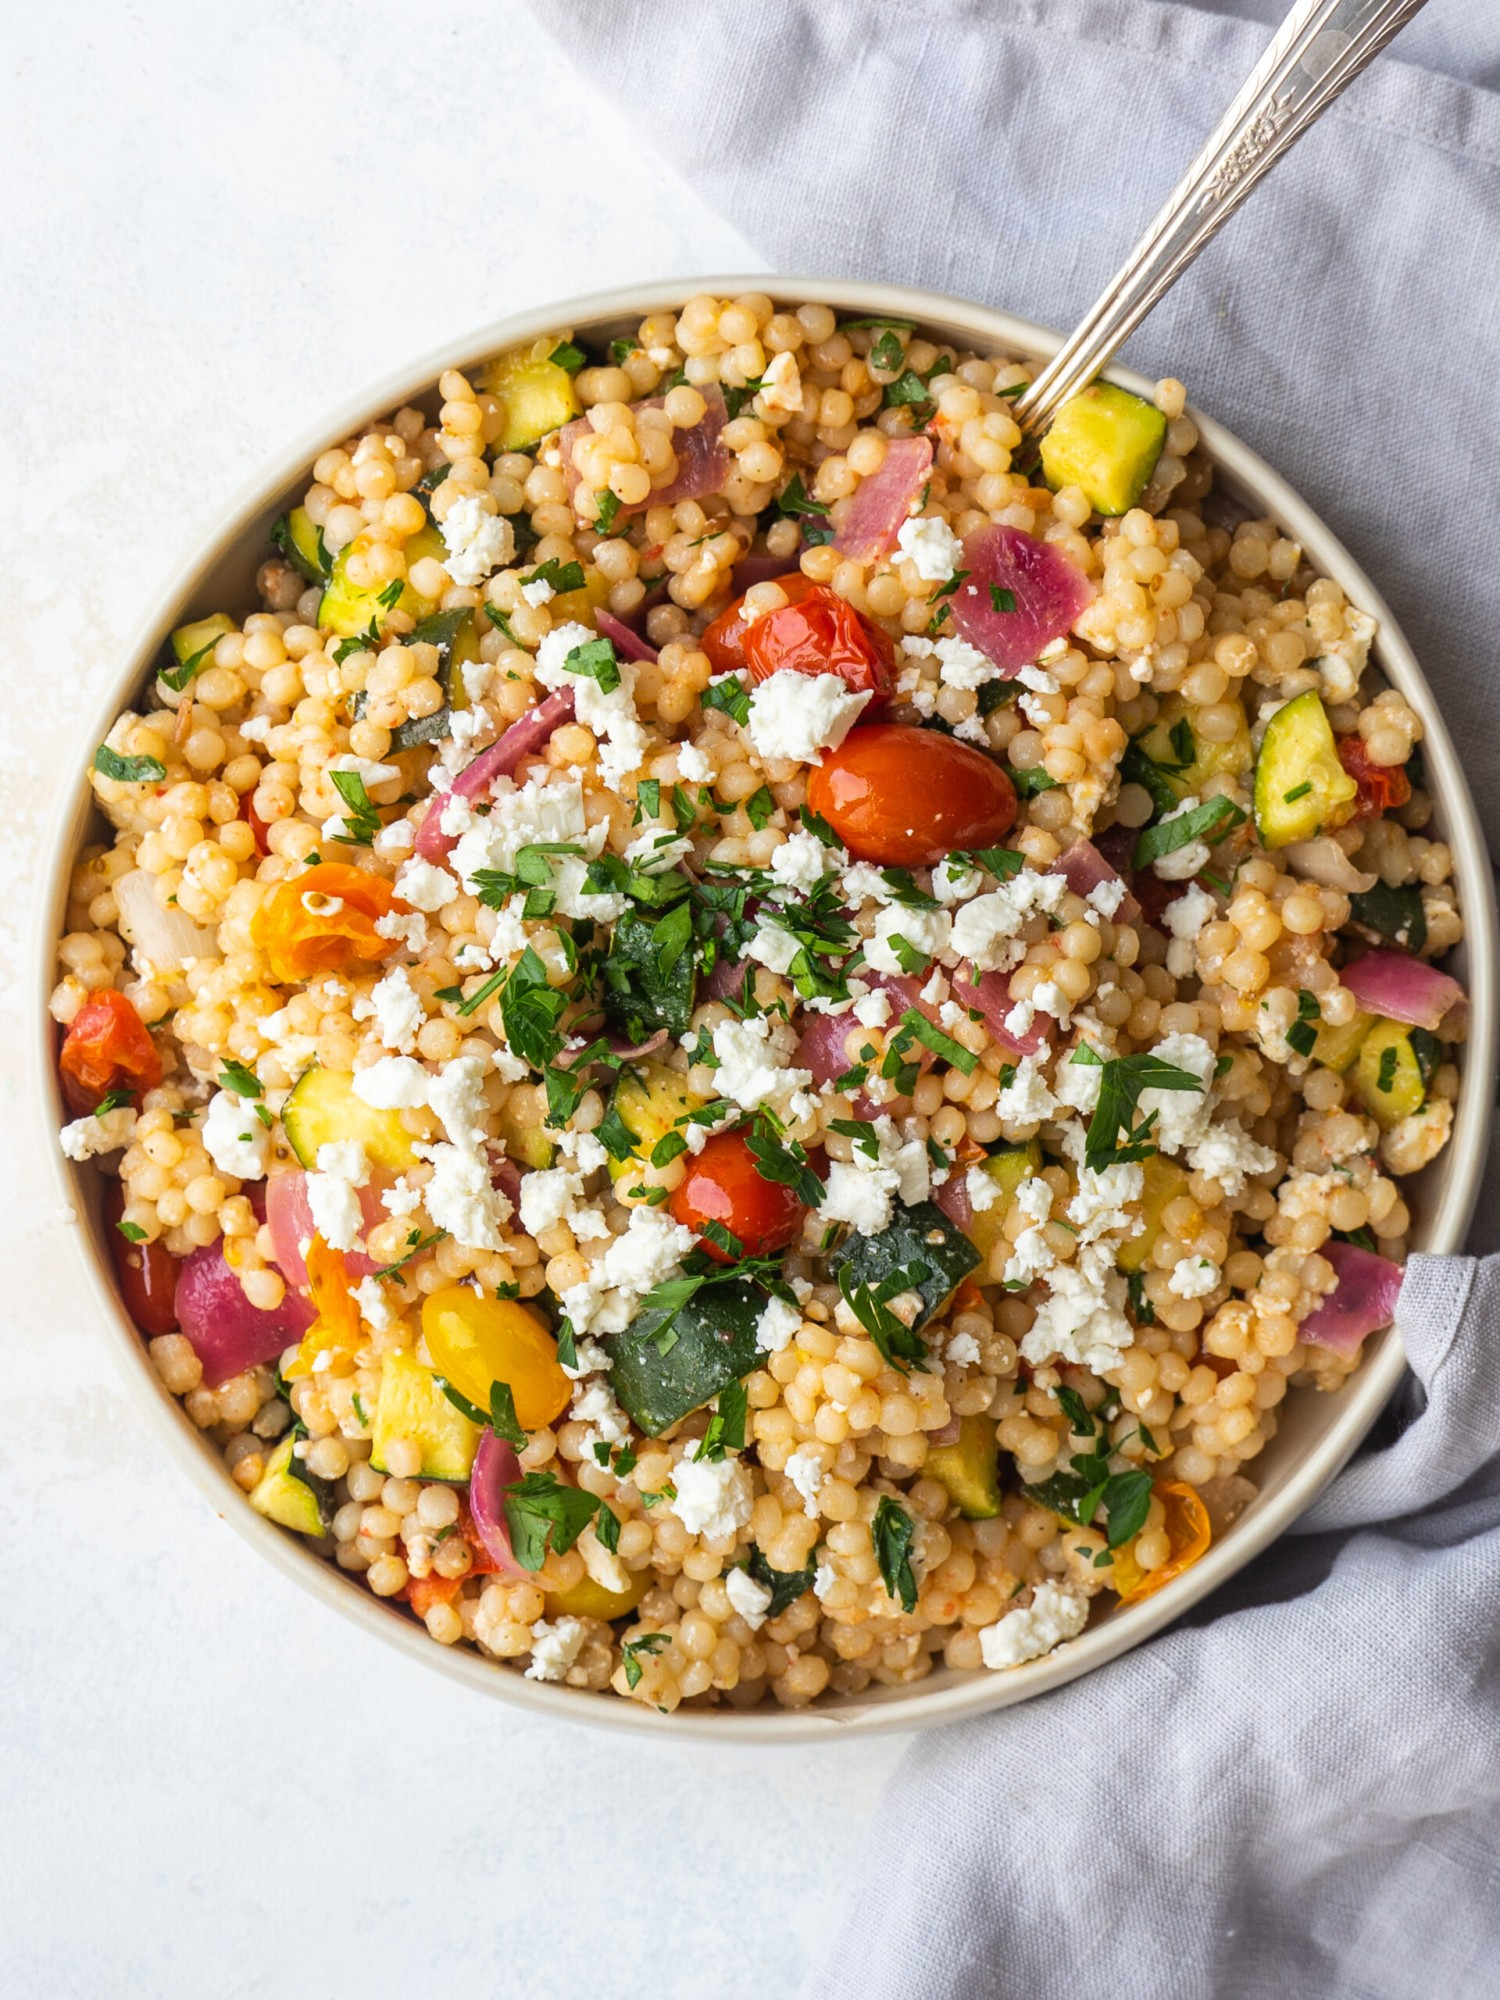 Above view of veggie couscous salad recipe in a serving bowl